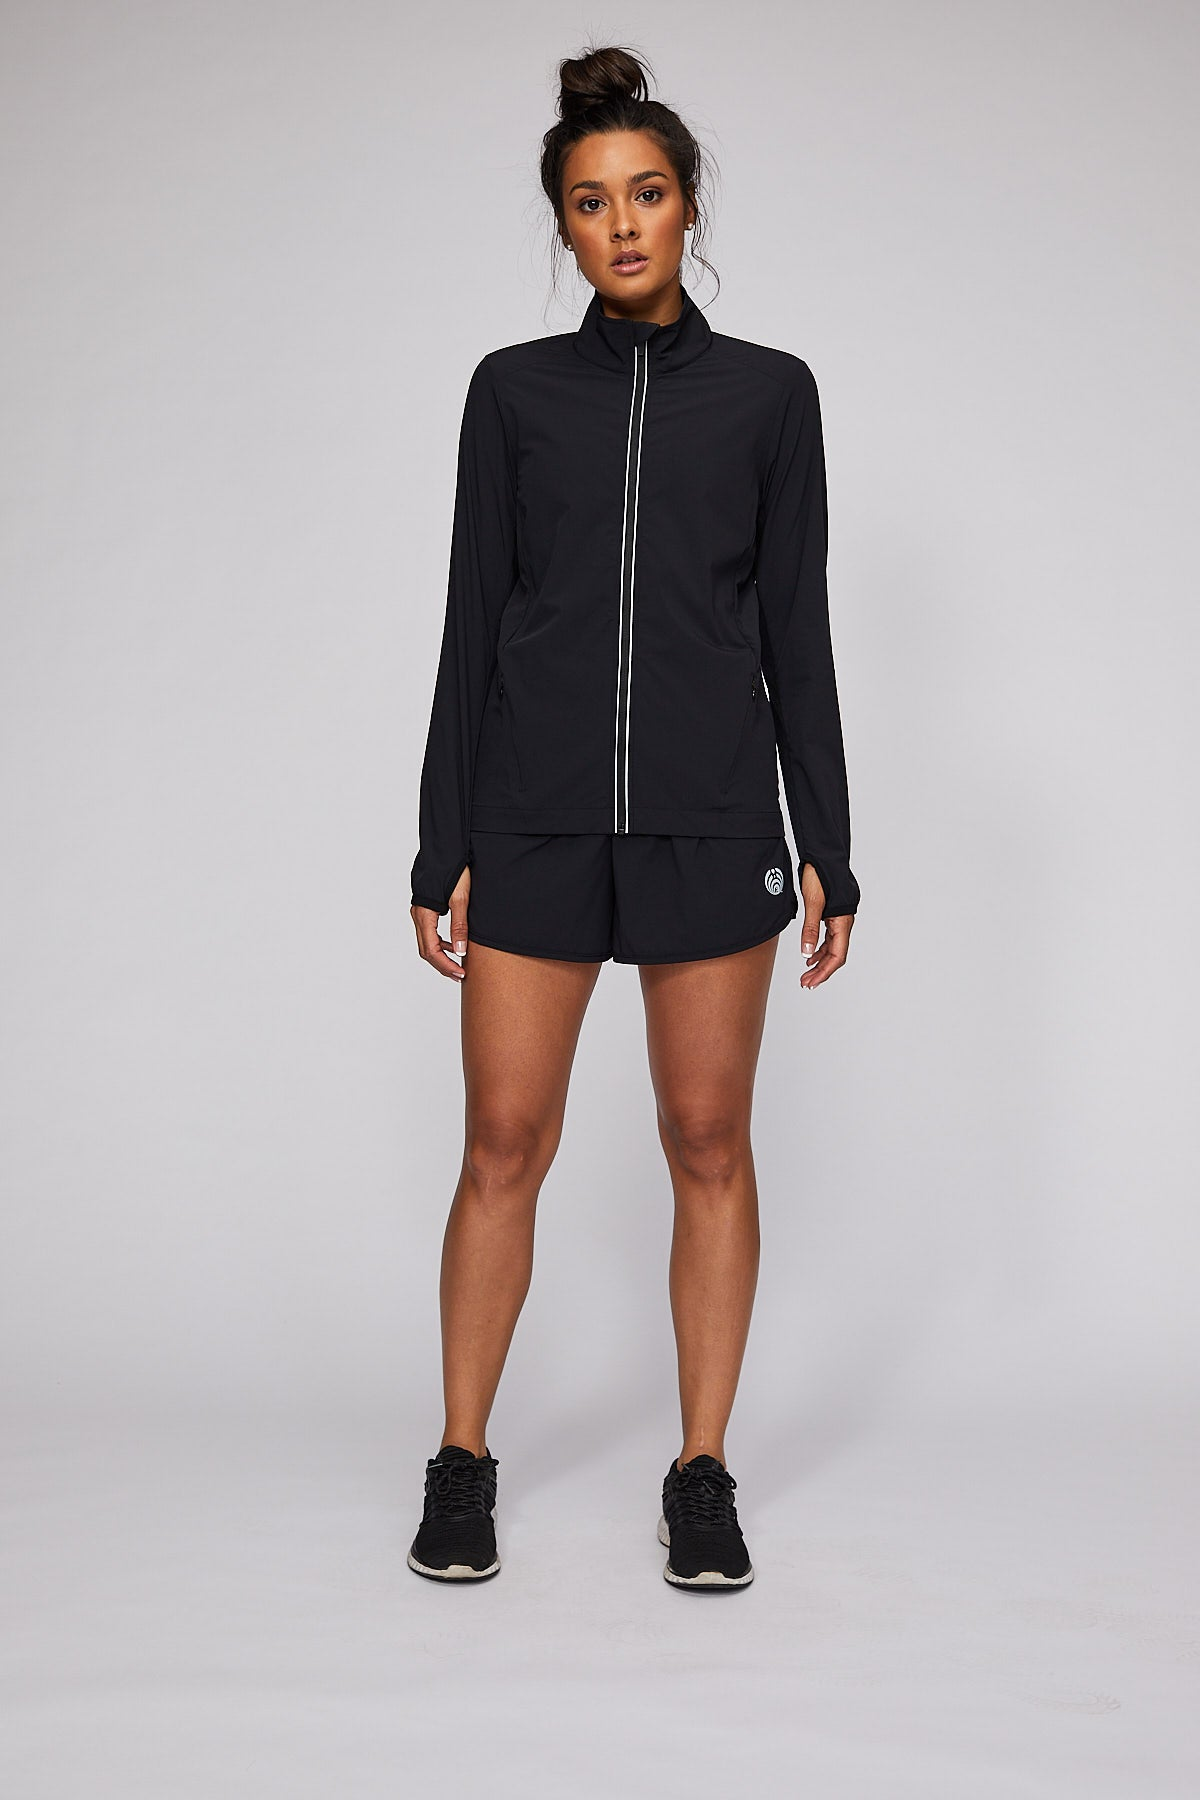 PERFORMANCE RUN JACKET - WOMENS